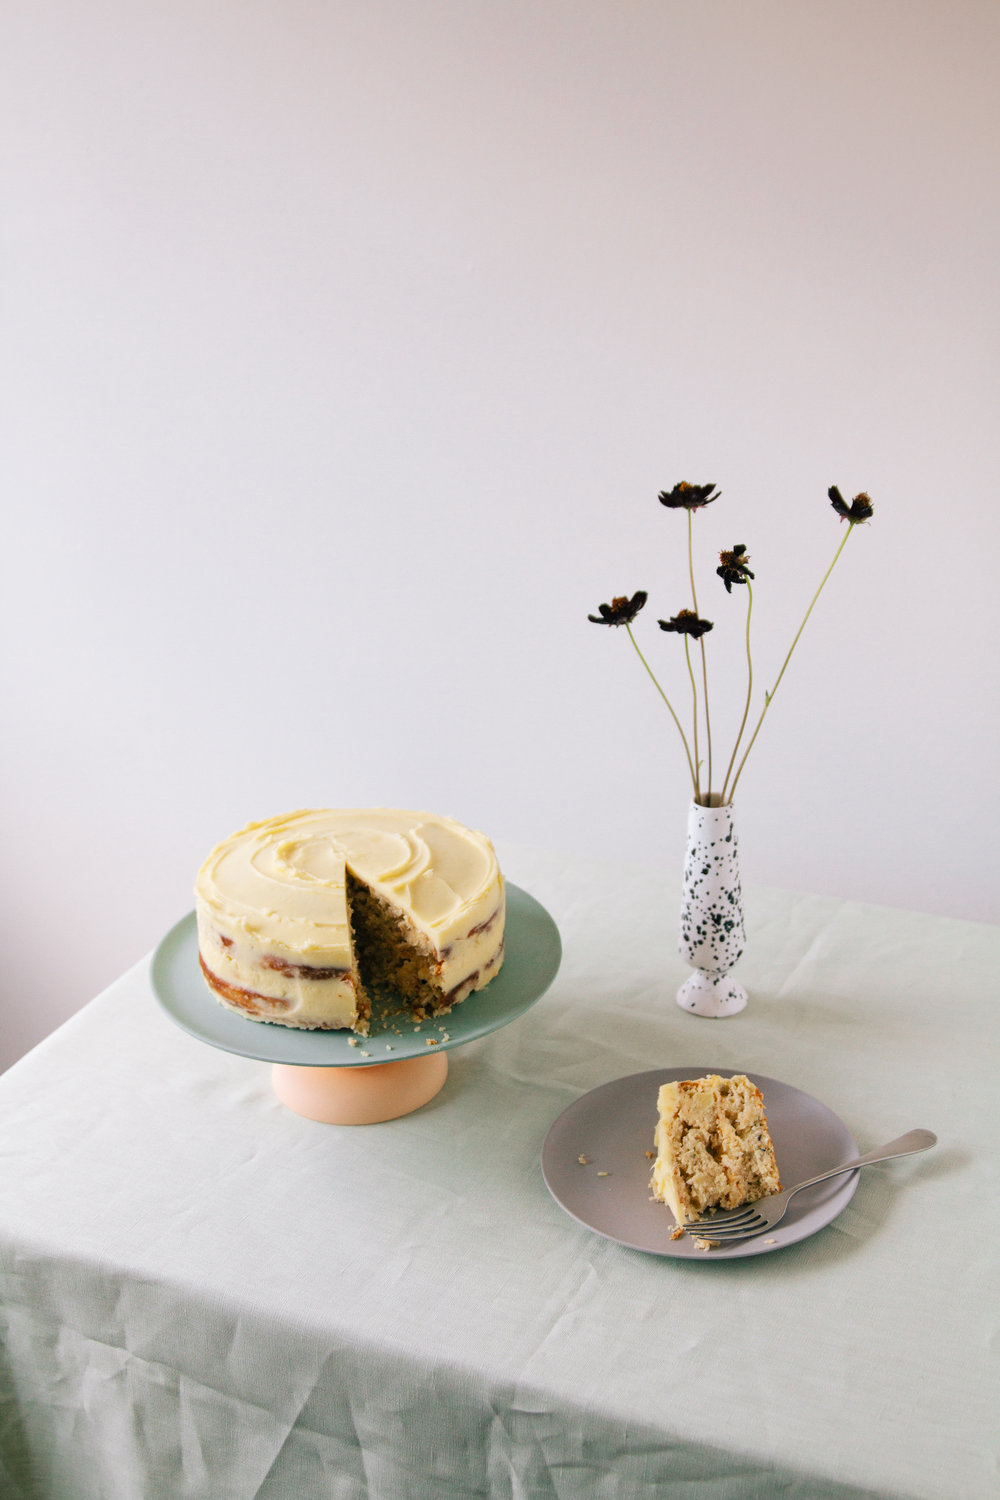 LUNCH LADY CARROT CAKE PHOTOGRAPHY1.jpg